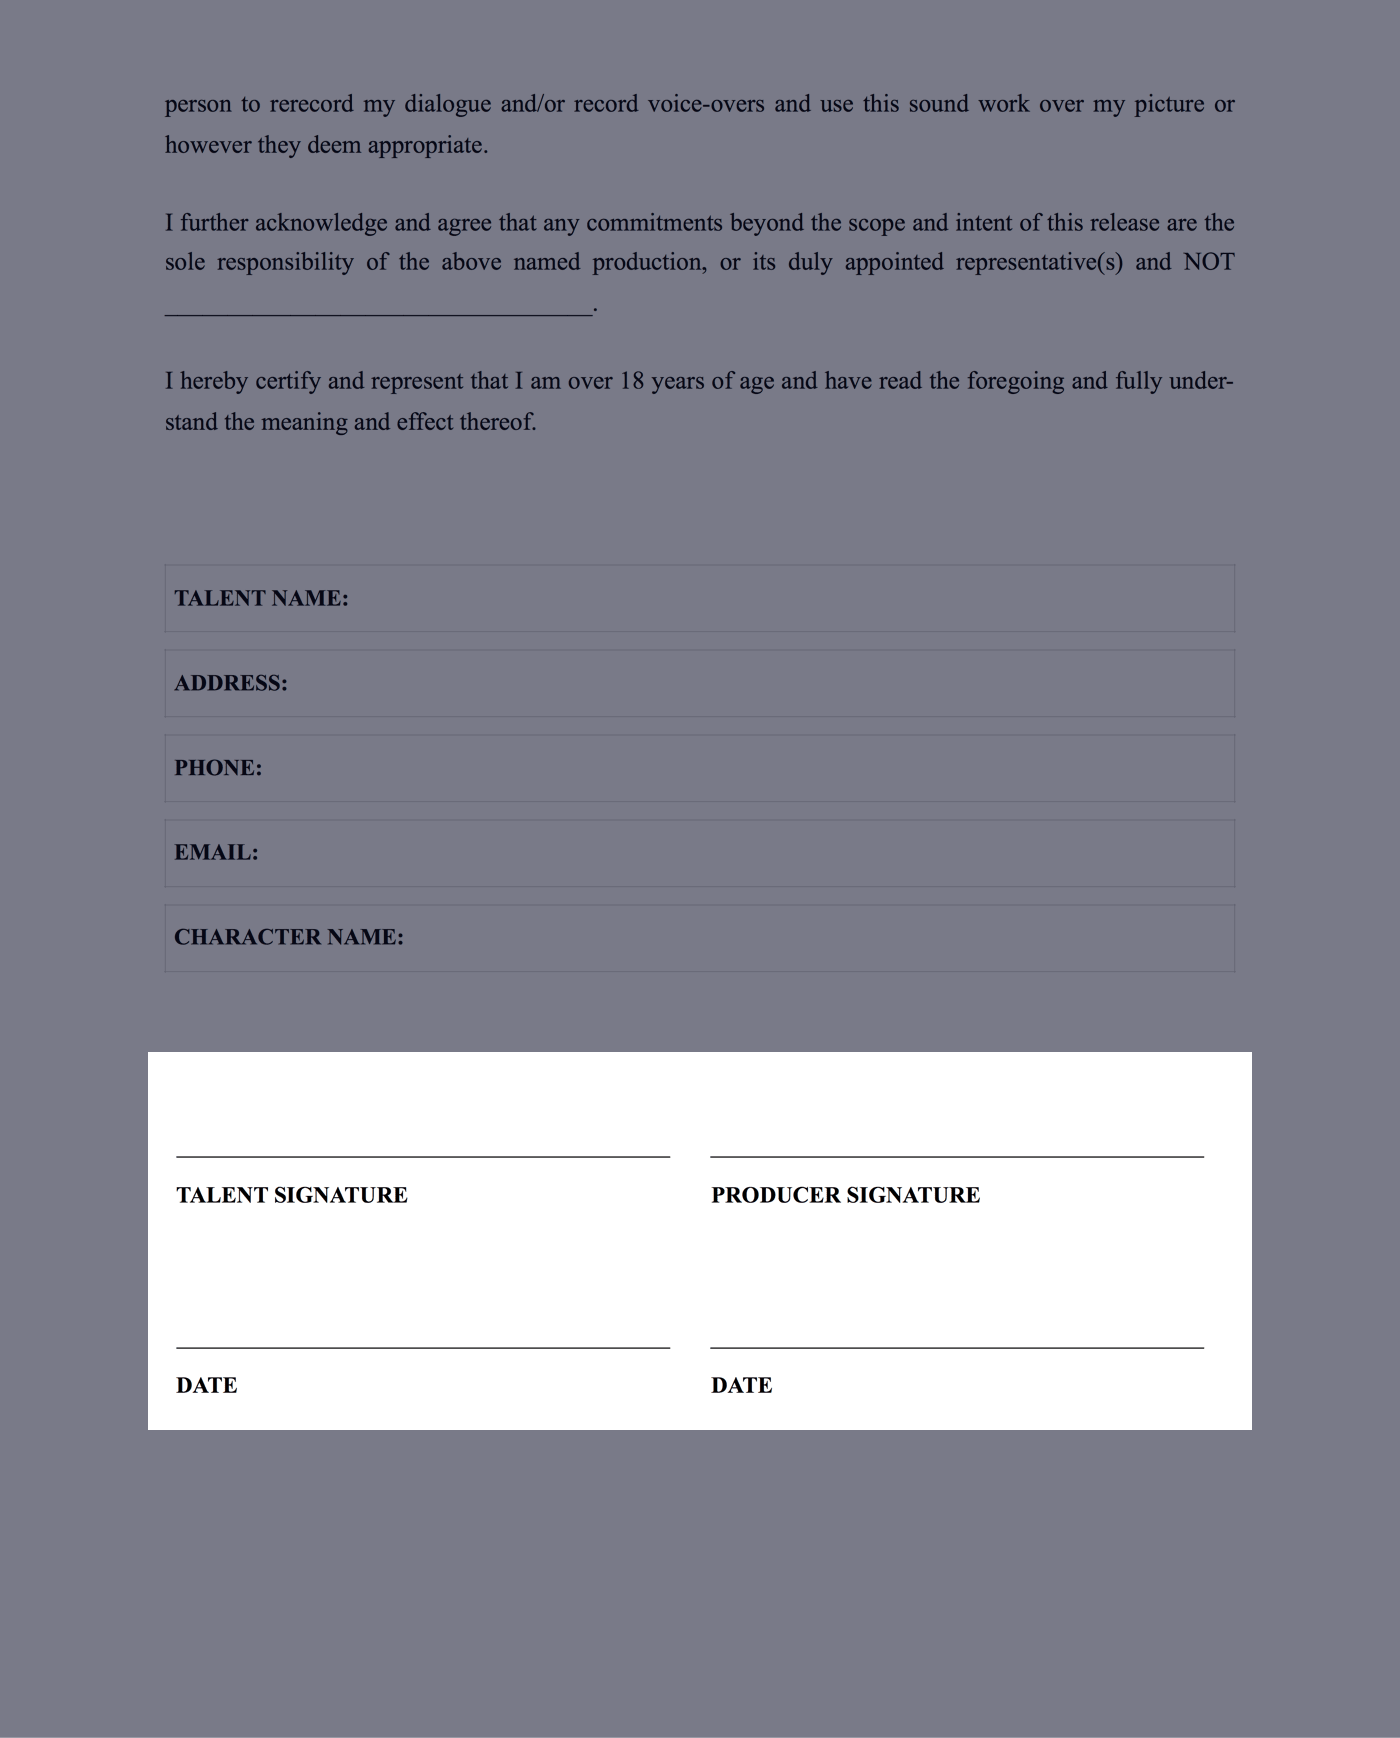 Film Actor Release Form Template   Talent And Producers Signatures    StudioBinder